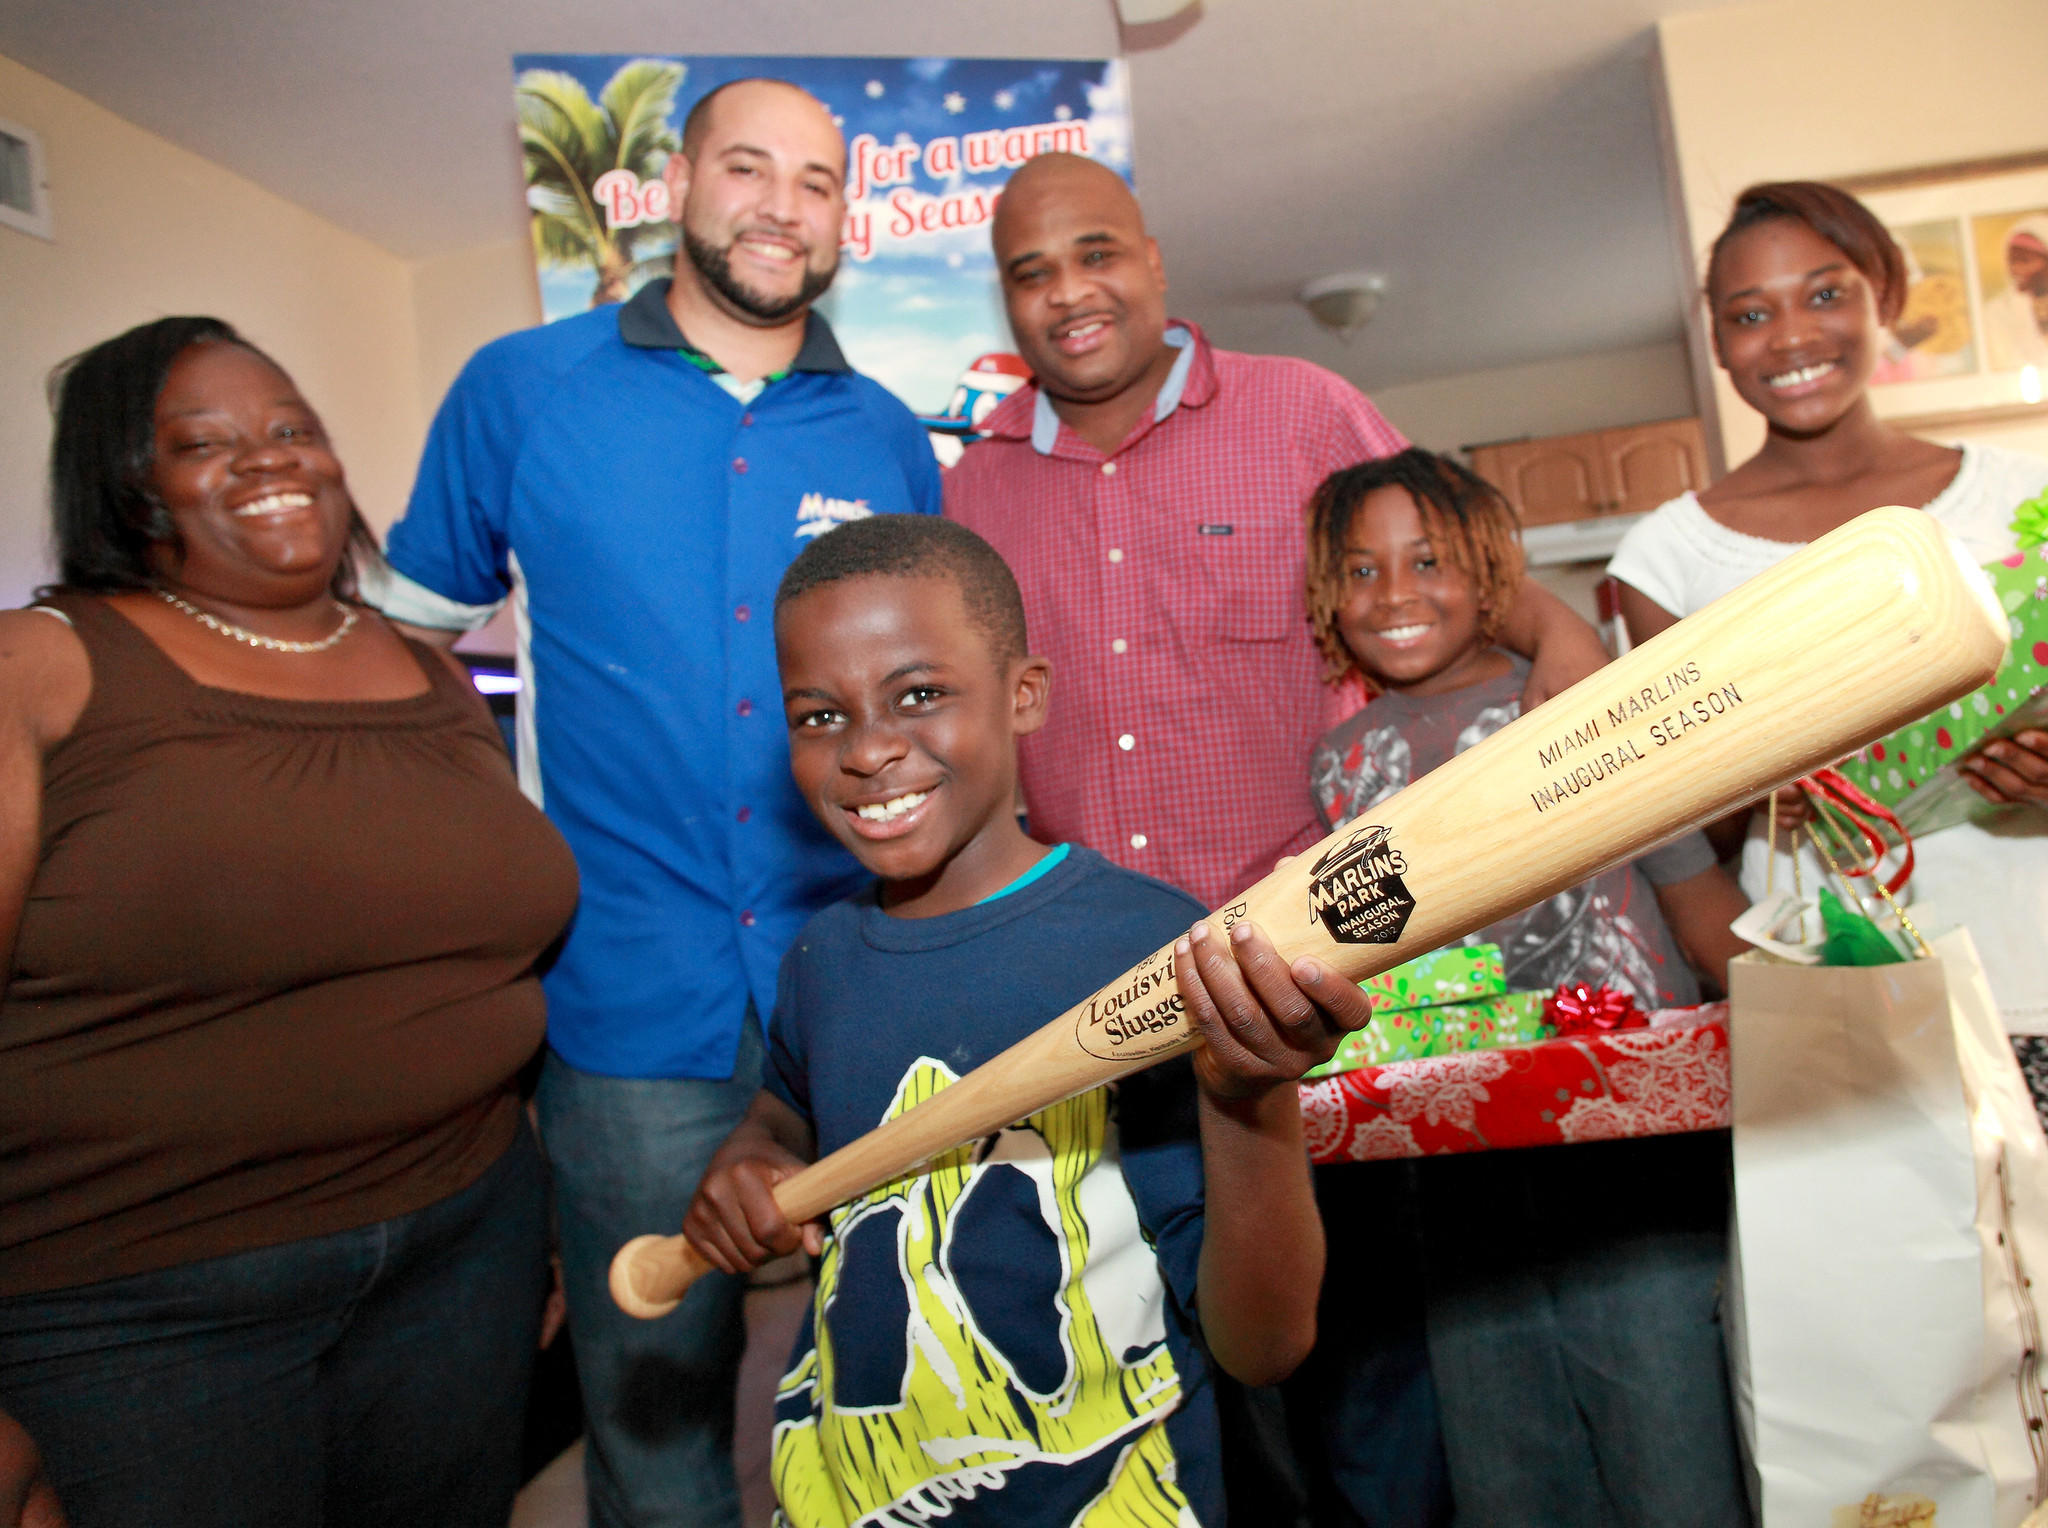 Juan Garciga, Marlins Community Outreach, center, poses next to (from left) Chrisie Clark, her son Quentin, 8, her husband James, her older son Amantay, 10, and her daughter Quantirel, 14, all members of the Clark family in Hollywood on December 20, 2013. The Marlins delivered Christmas gifts to the family.